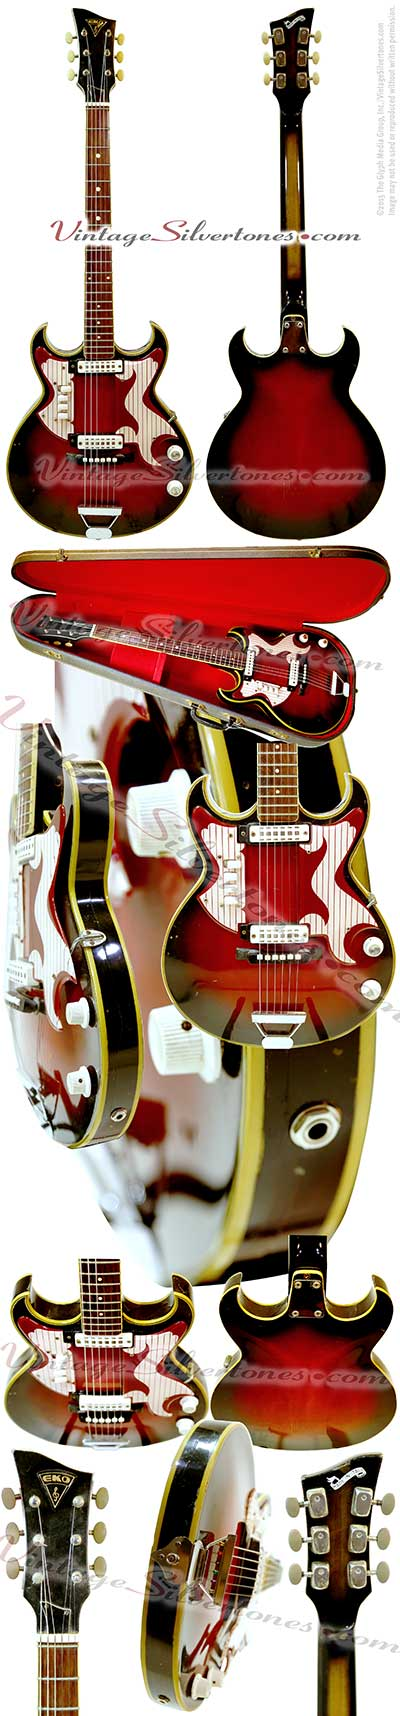 EKO Florentine electric guitar 2 pick ups made in Italy circa1967 red burst double cutaway